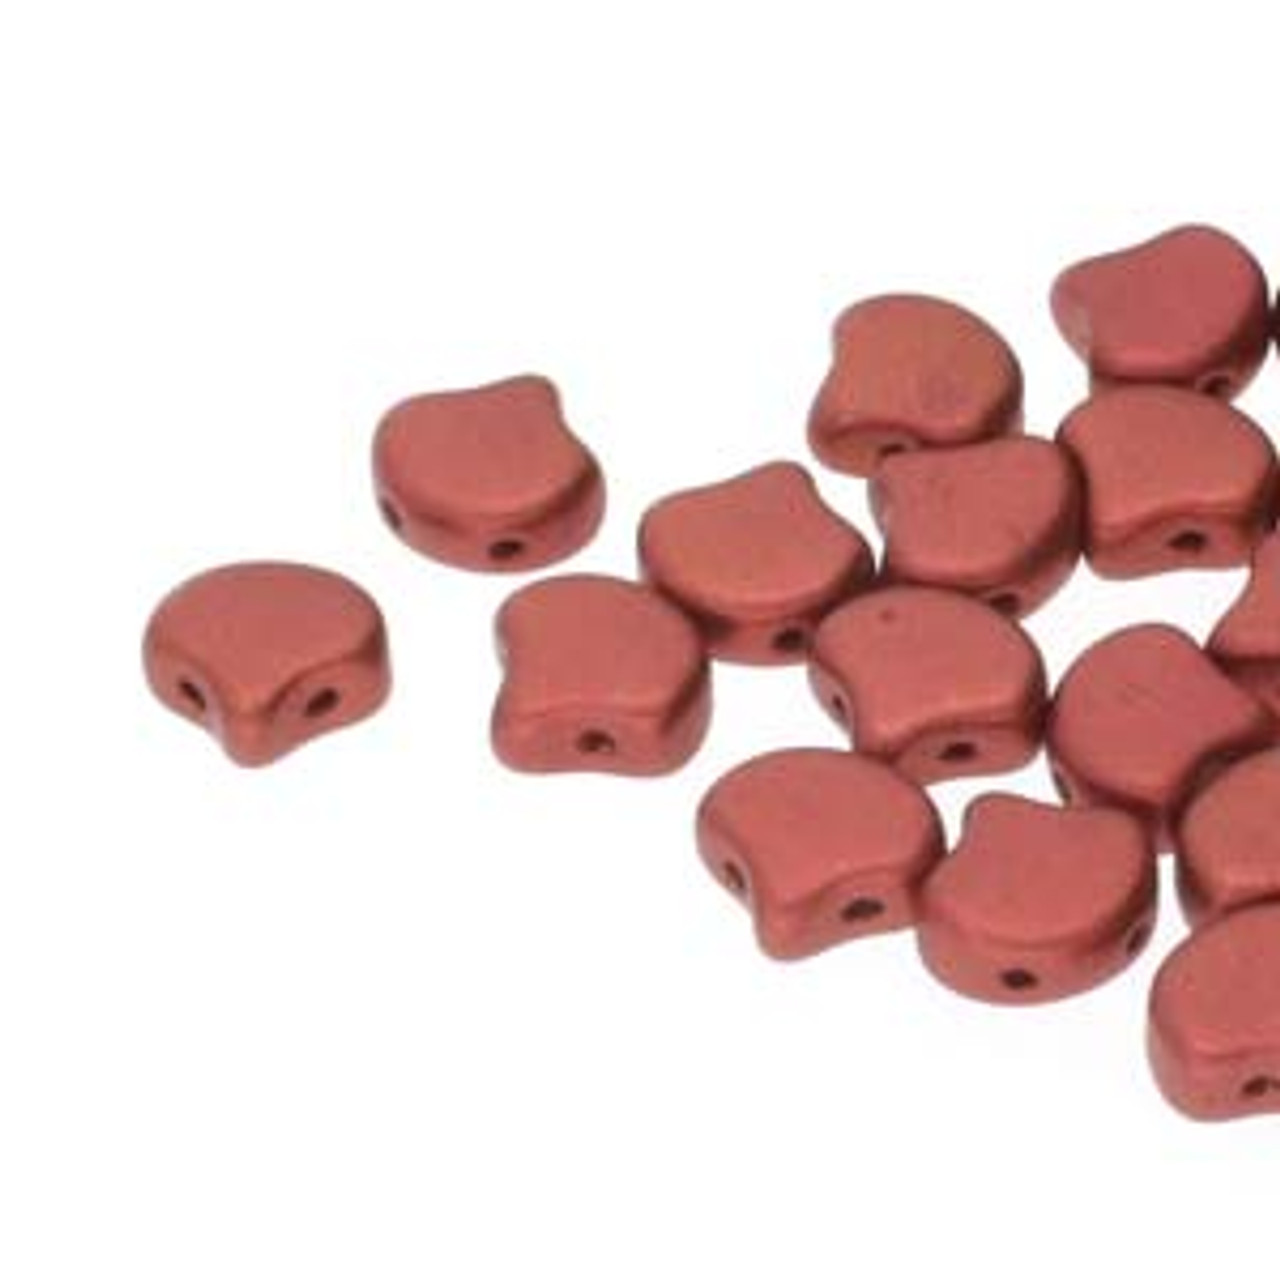 7.5x7.5mm Bronze Fire Red Two Hole Ginko Beads (8 Grams) Approx 30-35 Beads